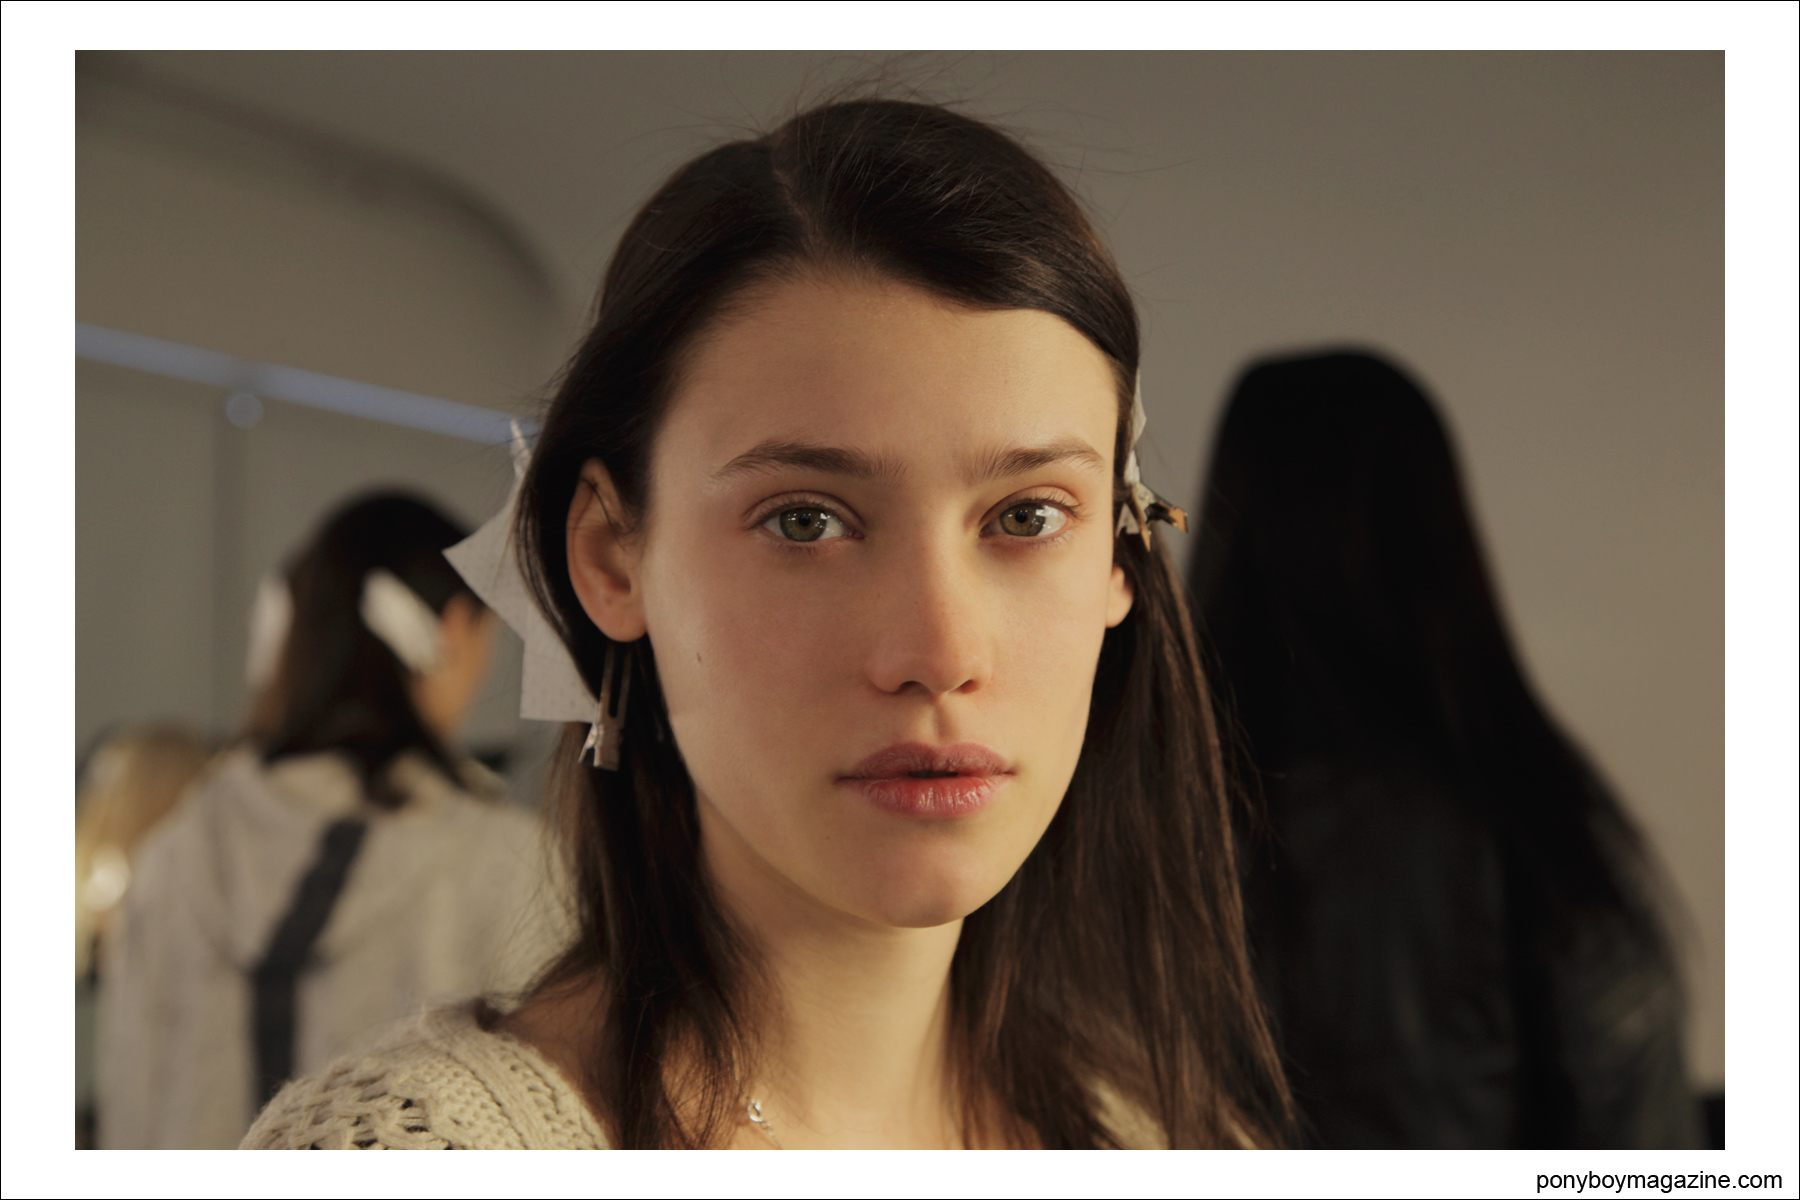 A young brunette model photographed by Alexander Thompson for Ponyboy Magazine in New York City at the Timo Weiland A/W 2014 Collection.